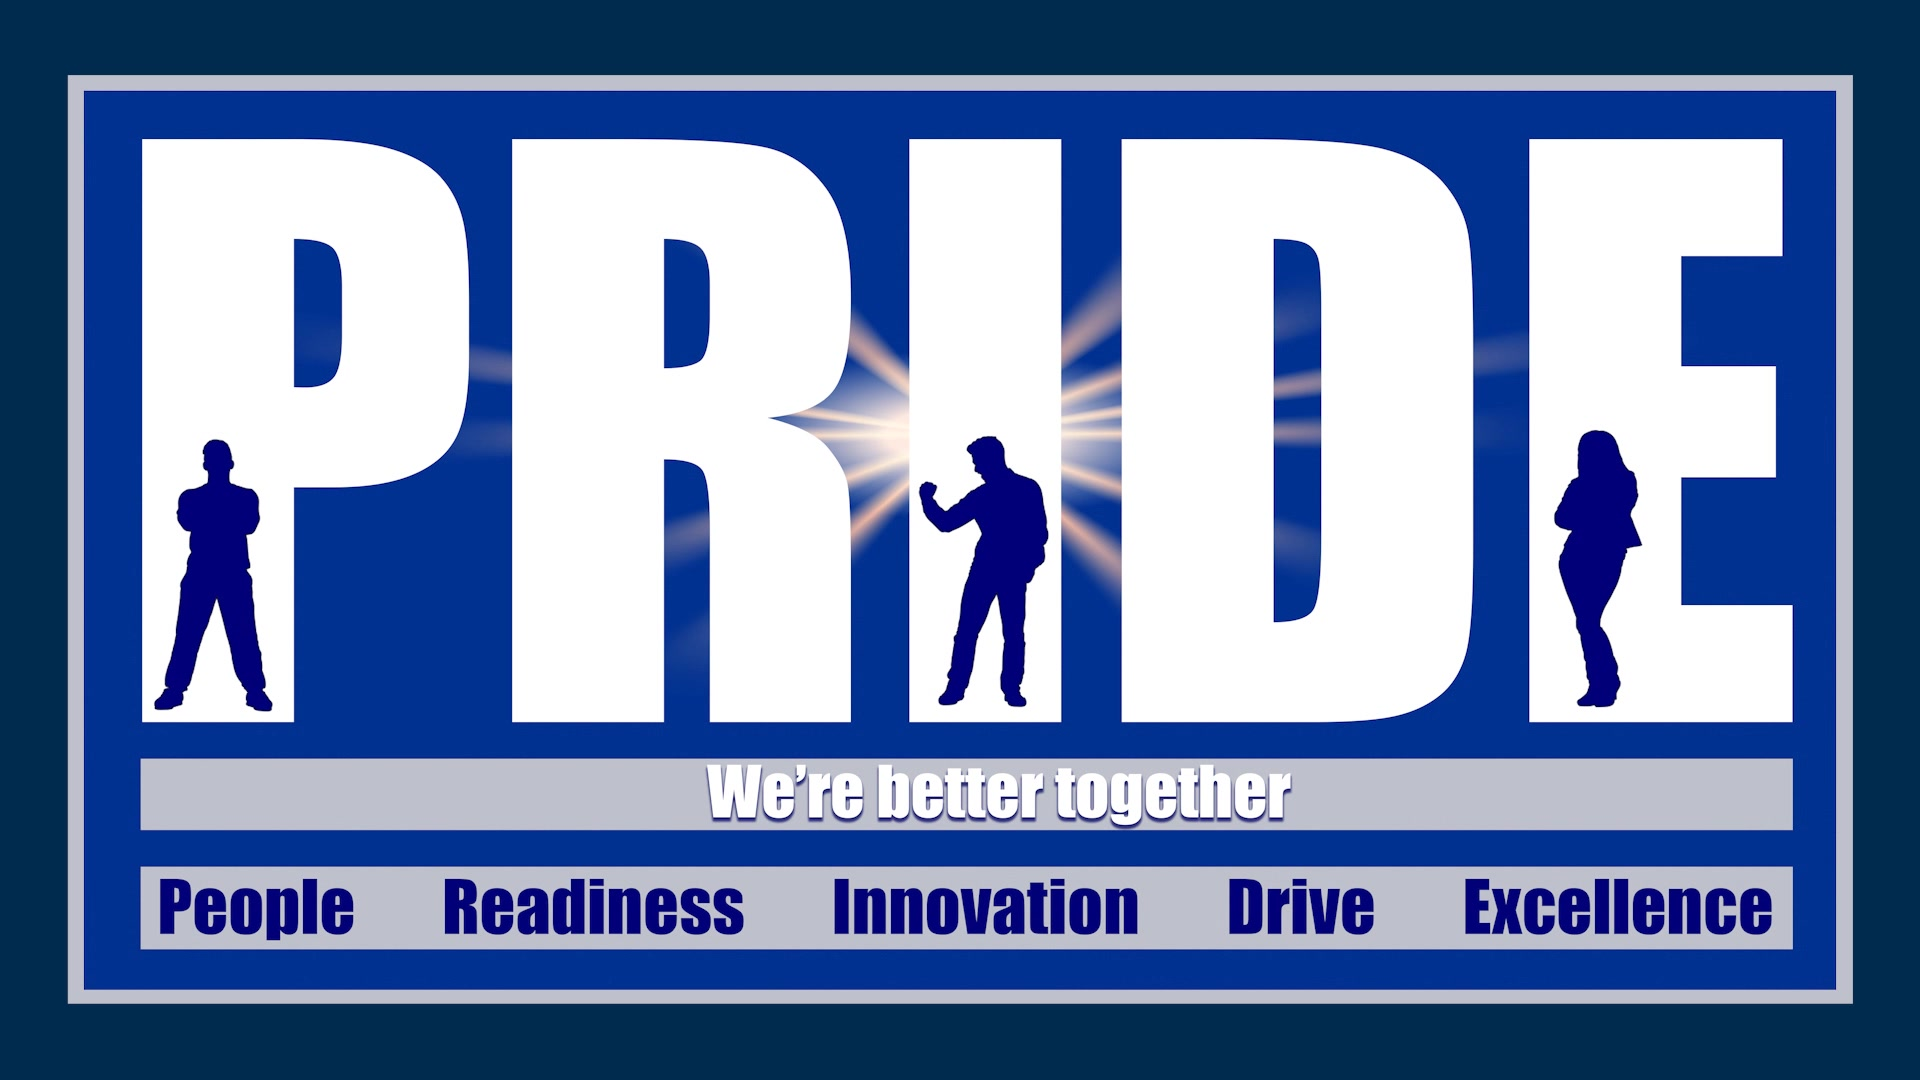 PRIDE into video lays out the five commander's priorities: People, Readiness, Innovation, Drive and Excellence.